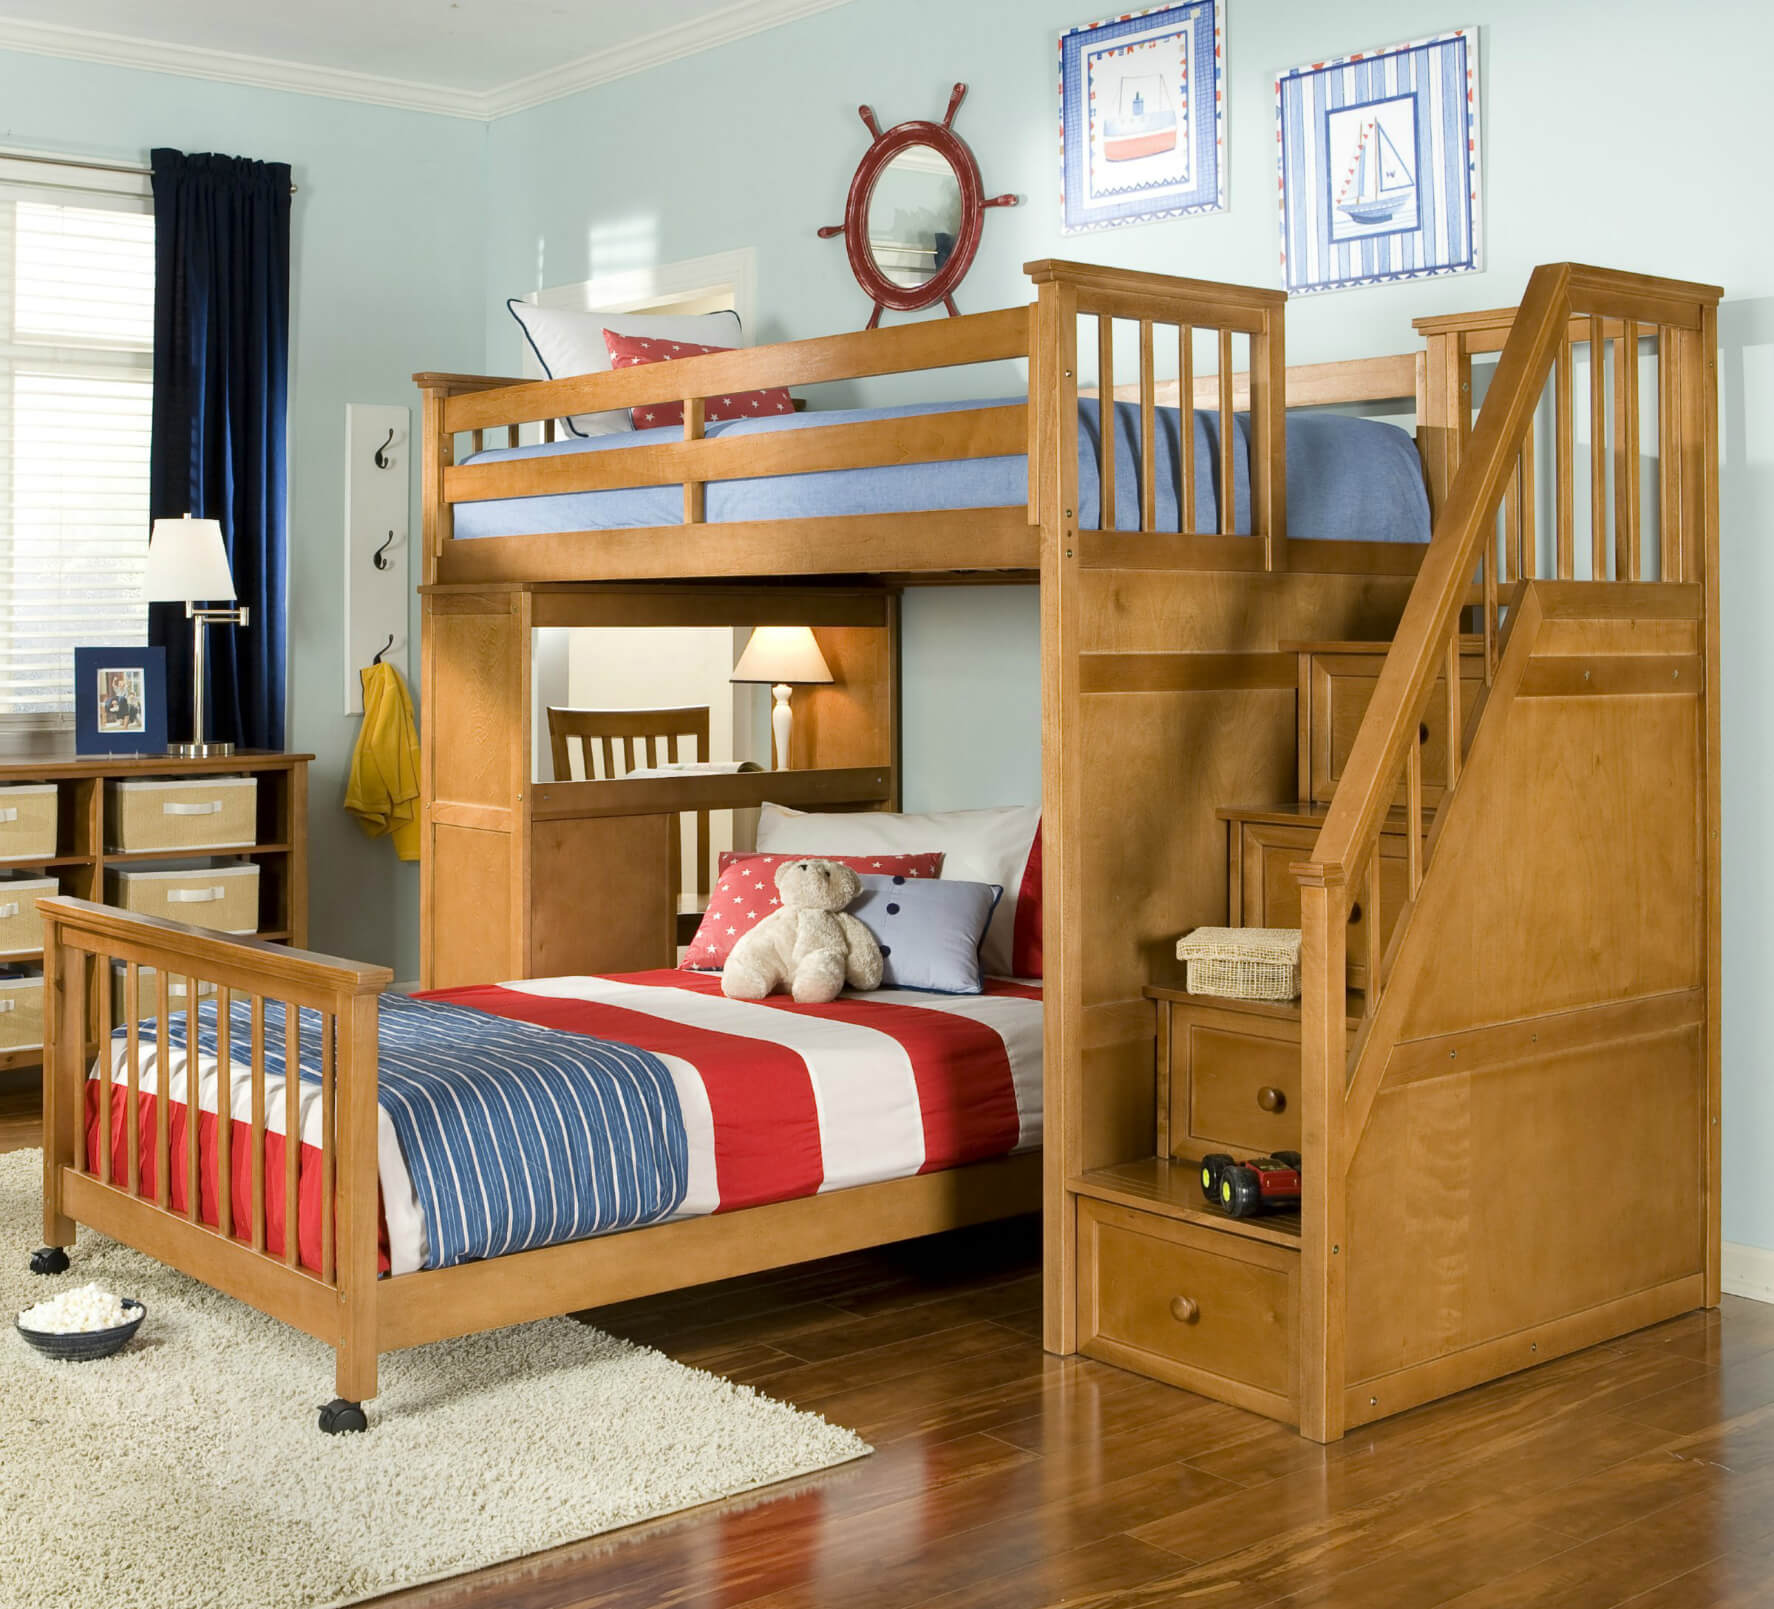 21 top wooden l shaped bunk beds with space saving features for Bunk beds for kids with stairs